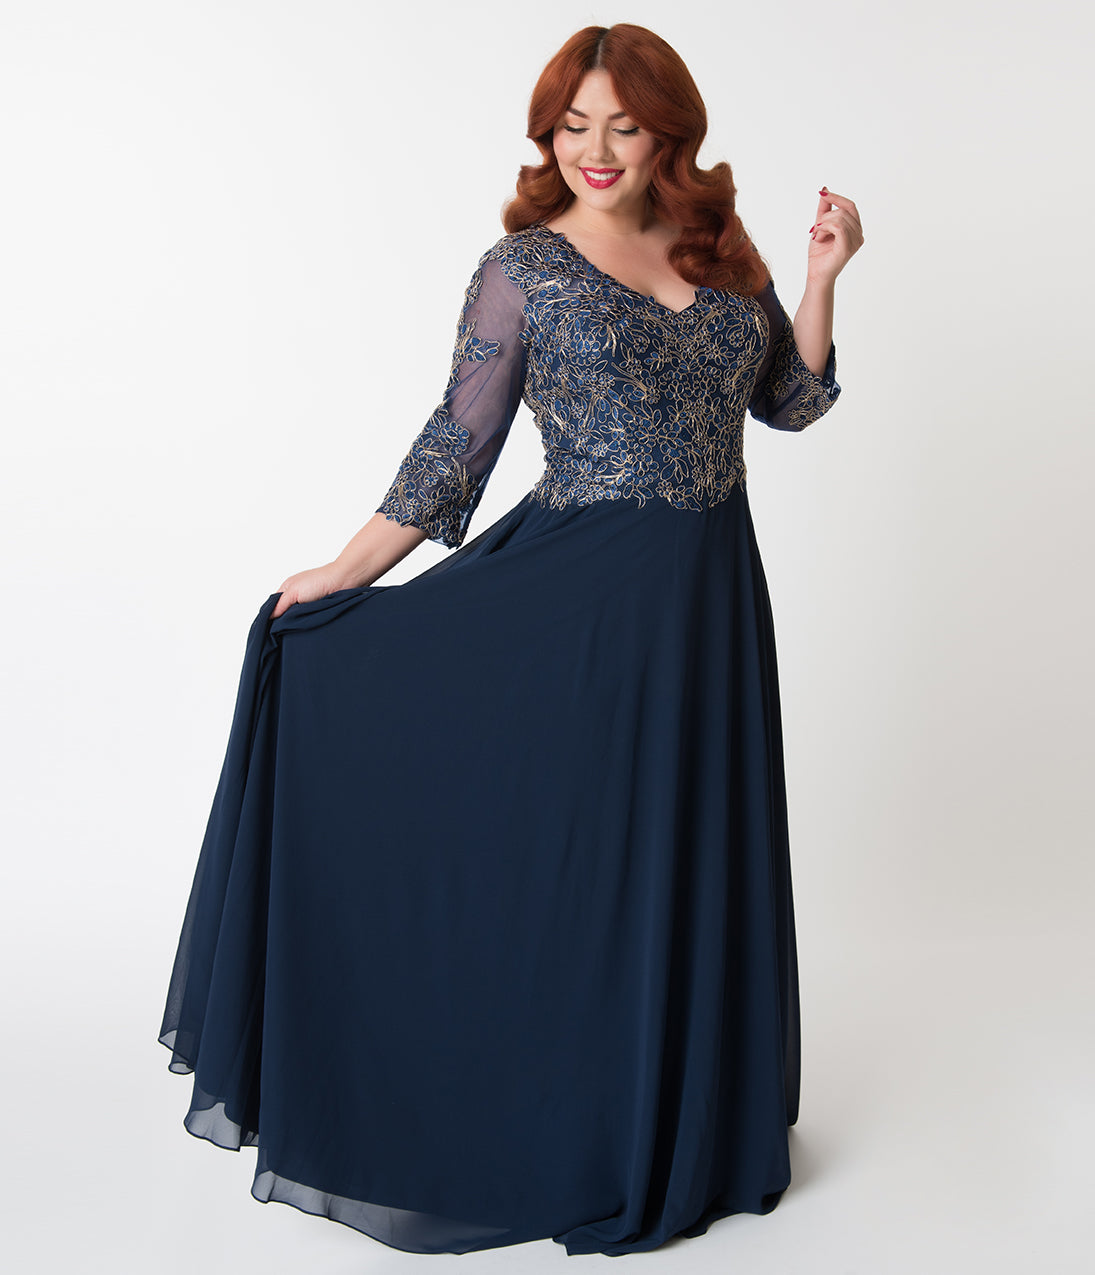 1940s Evening, Prom, Party, Cocktail Dresses & Ball Gowns Plus Size Navy Blue  Gold Embellished Appliqué Sleeved Chiffon Gown $168.00 AT vintagedancer.com